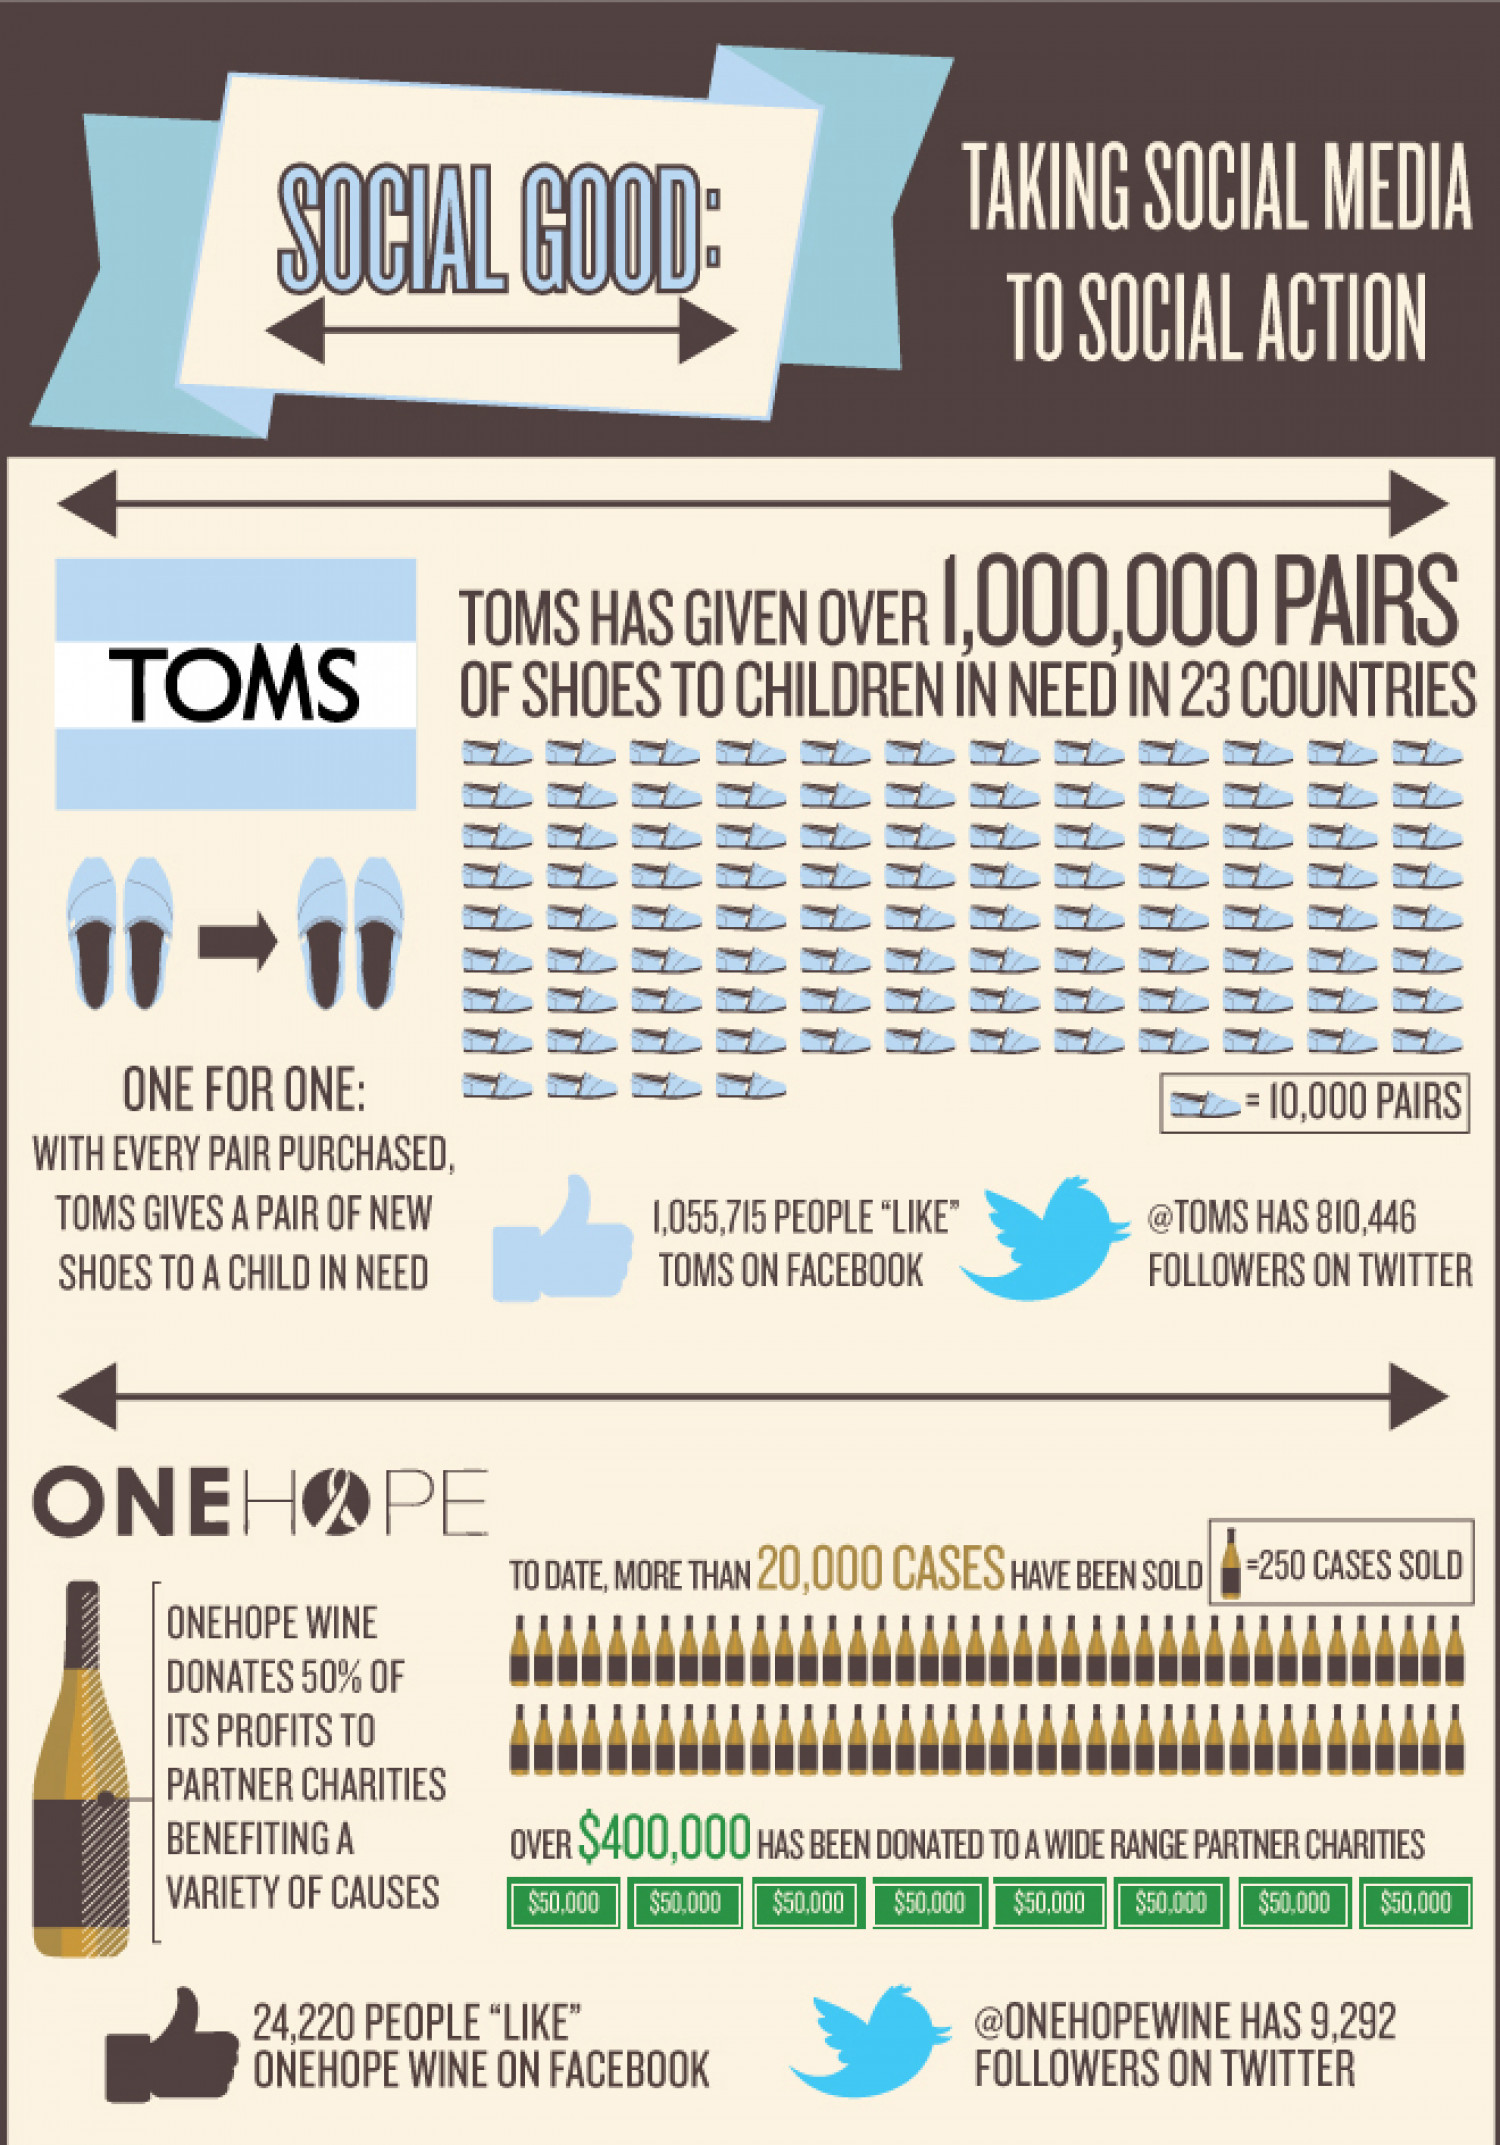 Social Good: Taking Social Media To Social Action Infographic